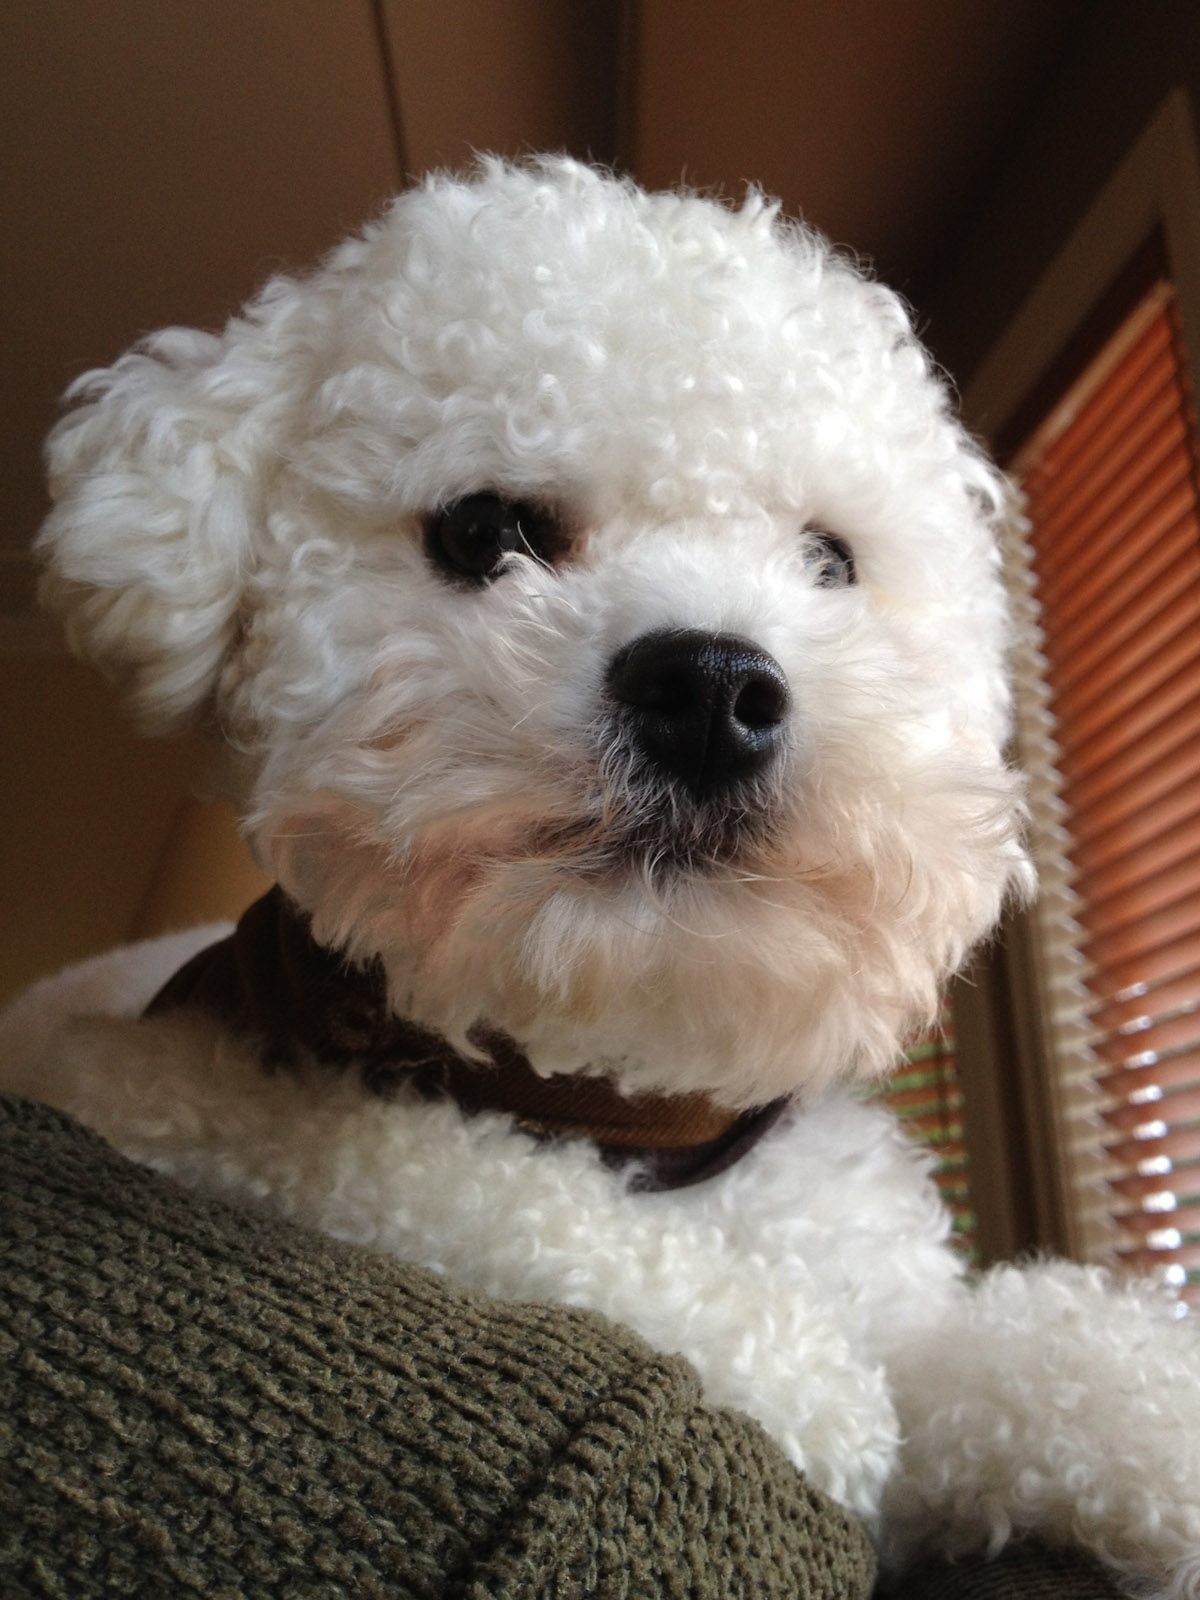 a close-up of a white bichon frise sits on the back of a couch, looking out the windows, guarding the house